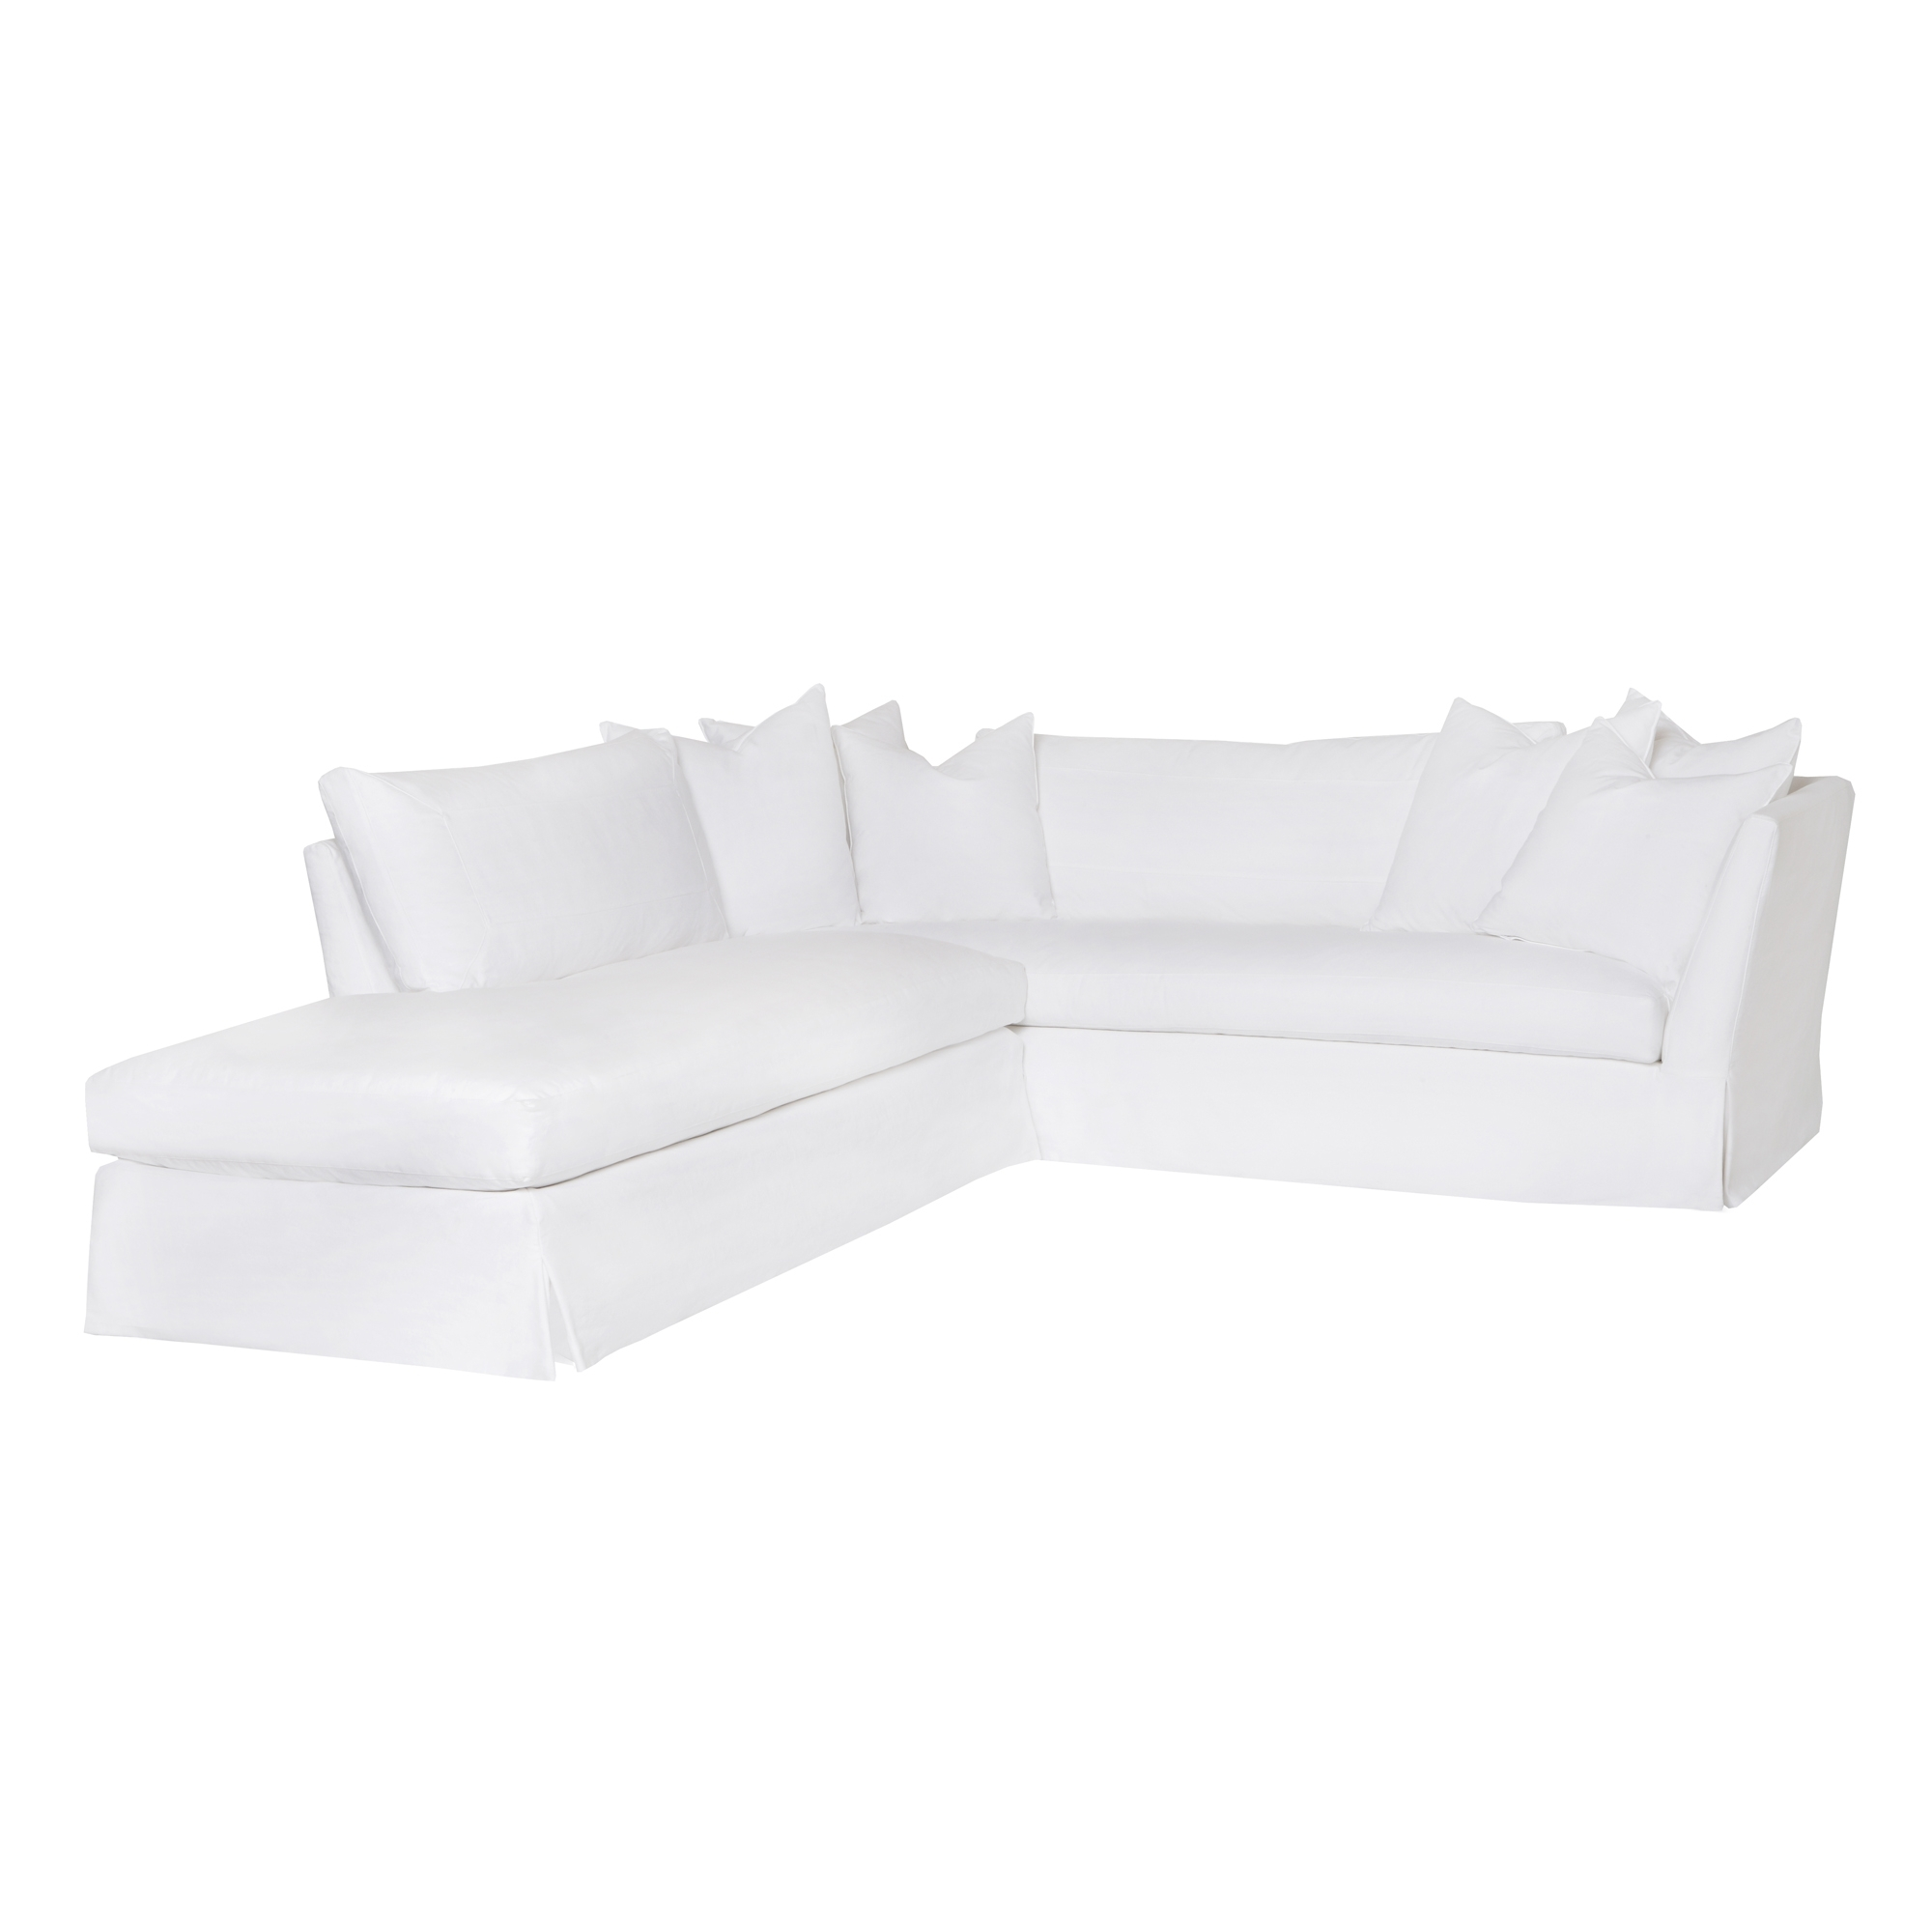 Seda Sectional | Villa Vici Contemporary Furniture Store And With Regard To New Orleans Sectional Sofas (View 4 of 10)